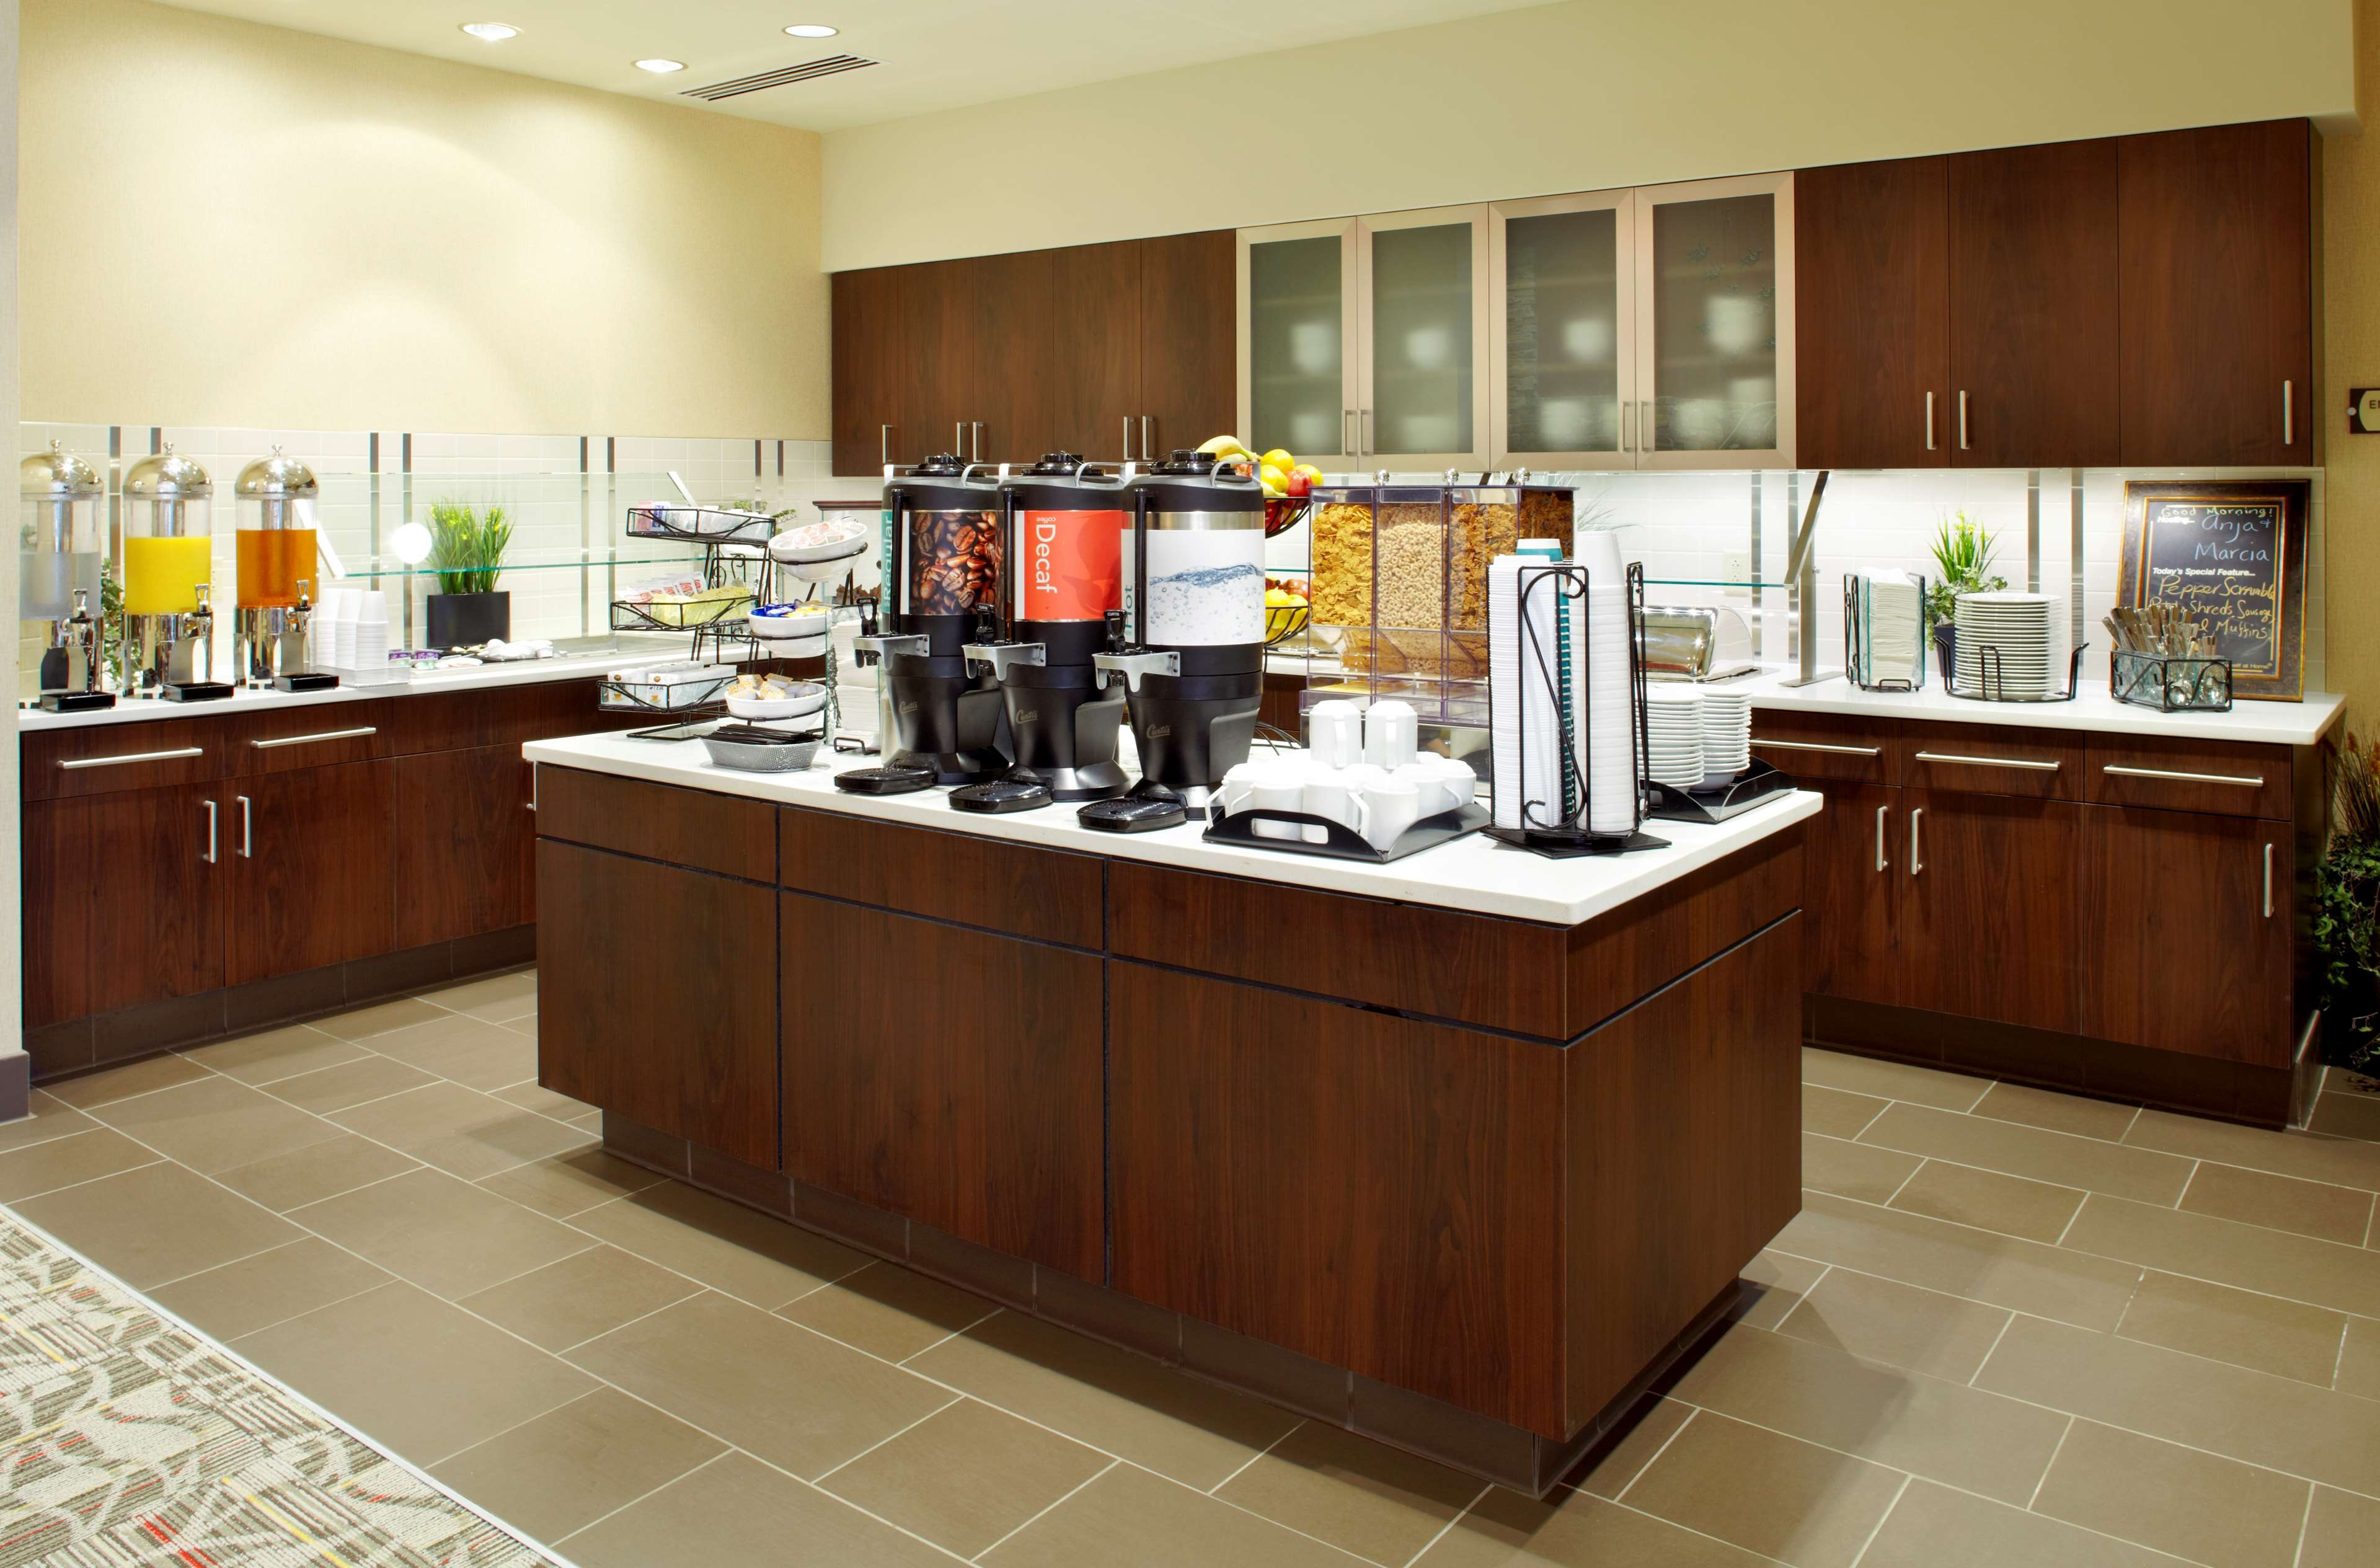 Homewood Suites by Hilton Pittsburgh Airport Robinson Mall Area PA image 8